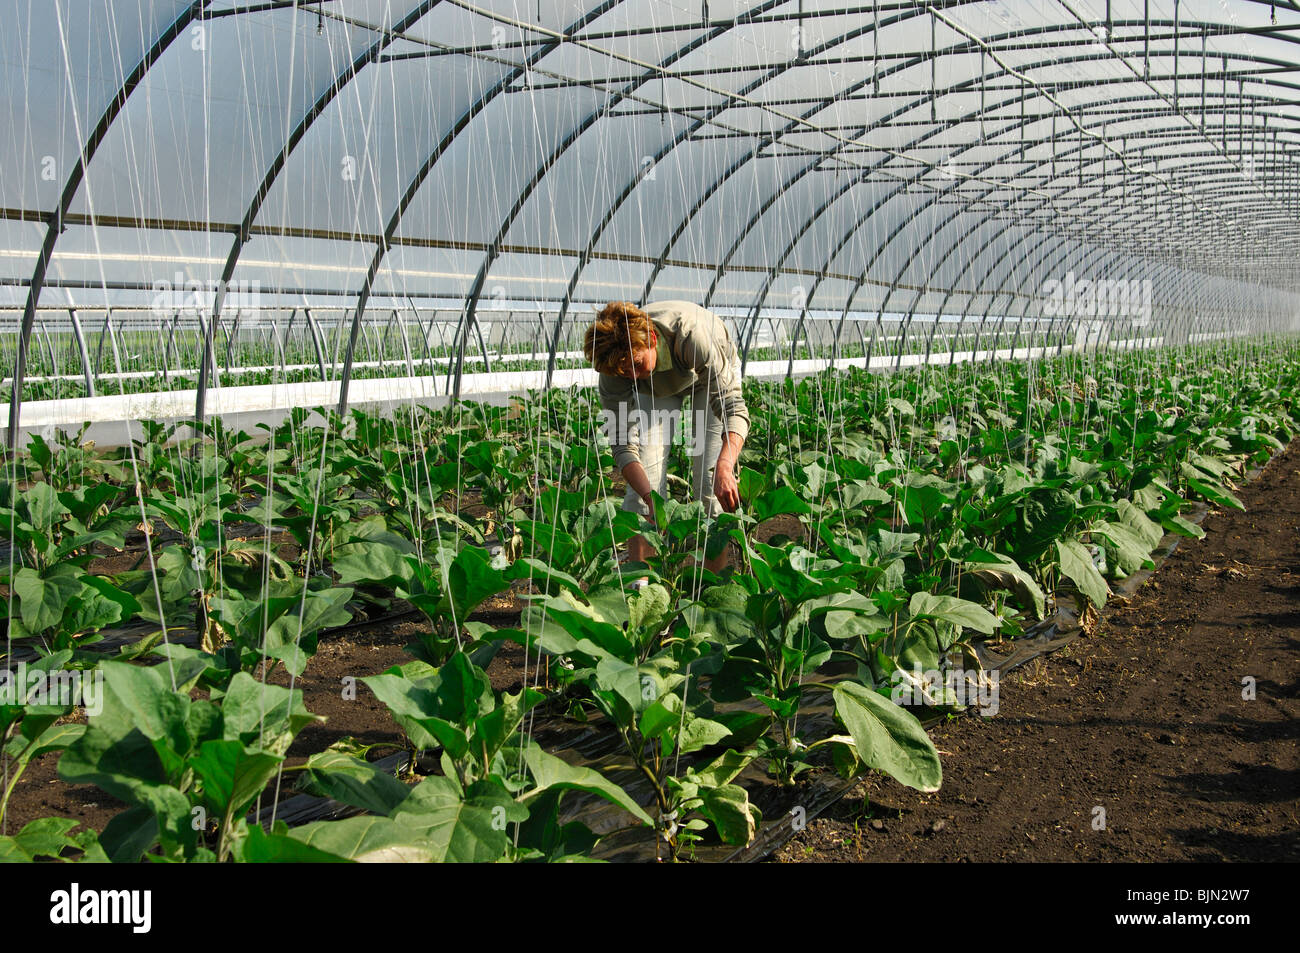 Female gardener at work in a greenhouse for egg plants, vegetable-growing area Grosses Moos, Seeland region, Switzerland - Stock Image